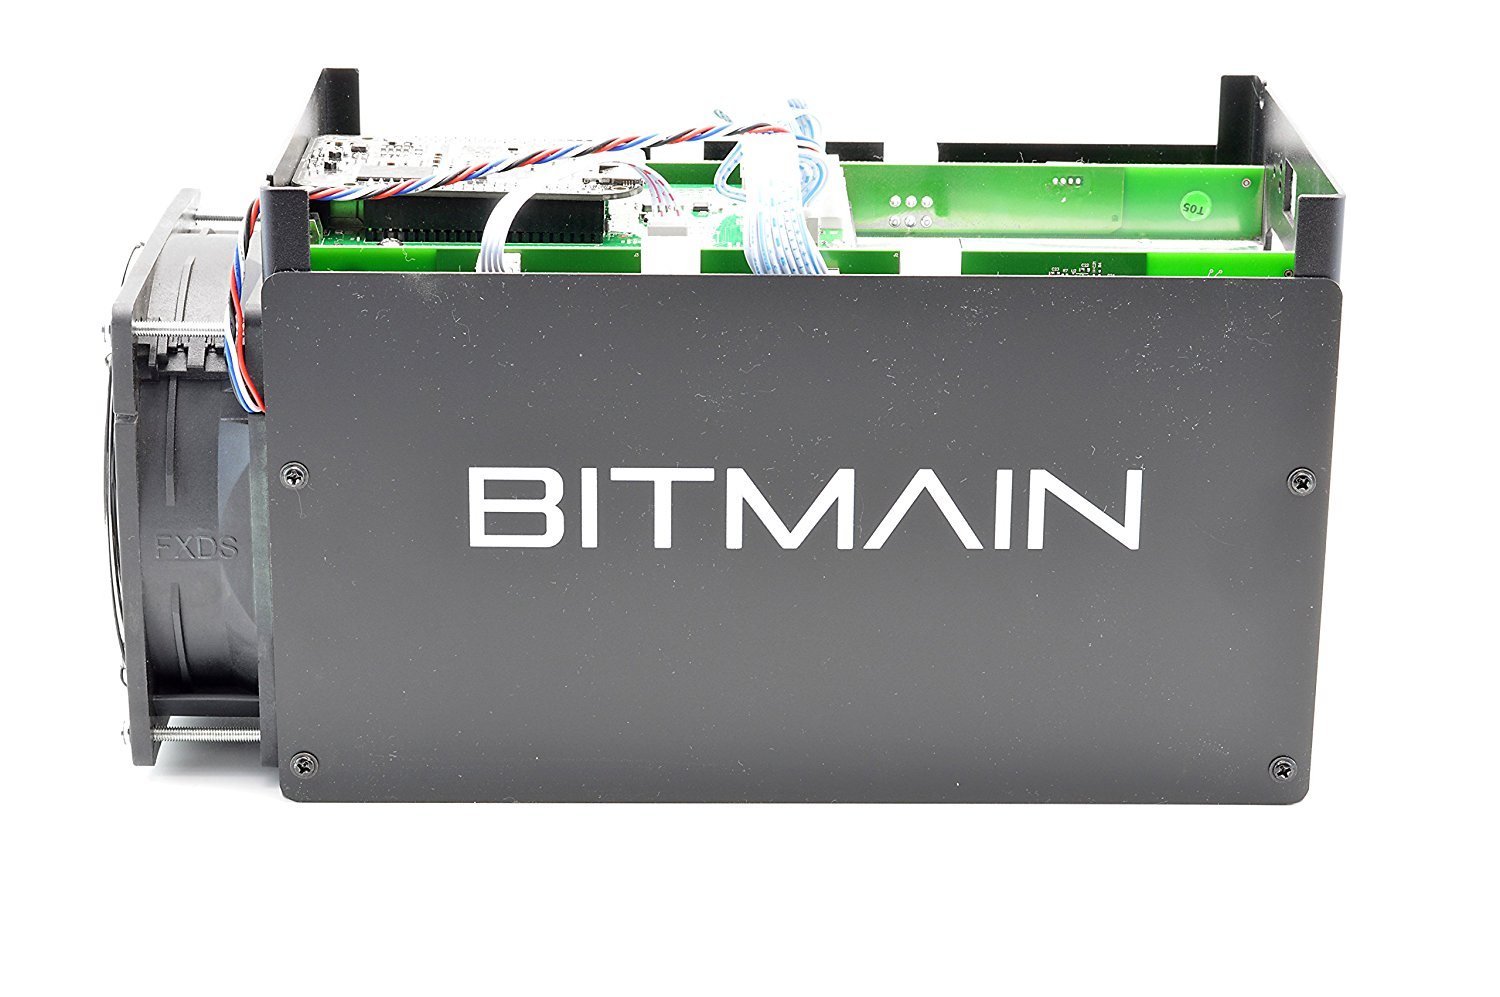 Bitcoin miner machine